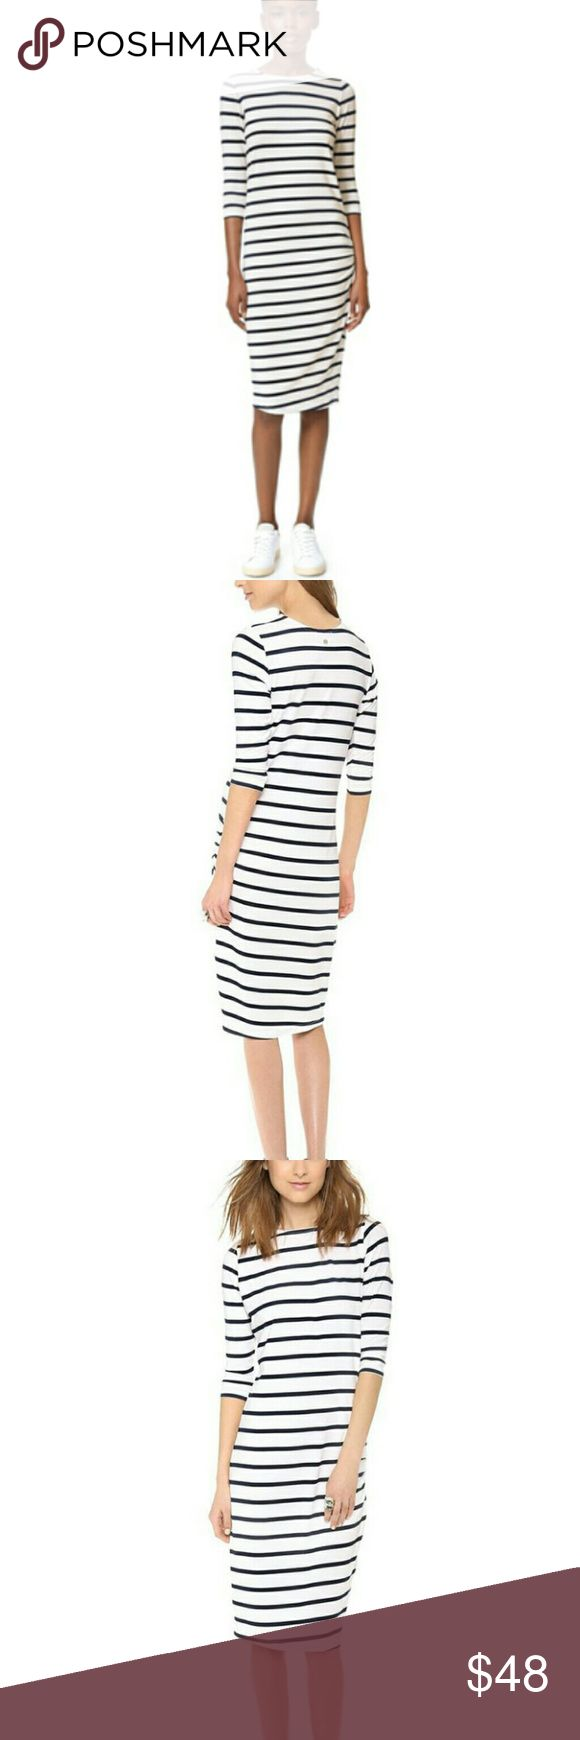 Eleven Paris Stripped Dress Great dress! It is the softest material ever! It has stripes they look black but it says they are navy so I will say dark navy stripes. It has ruching around the hips. Simple basic dress but super cute, easy and a must have closet staple! Eleven Paris Dresses